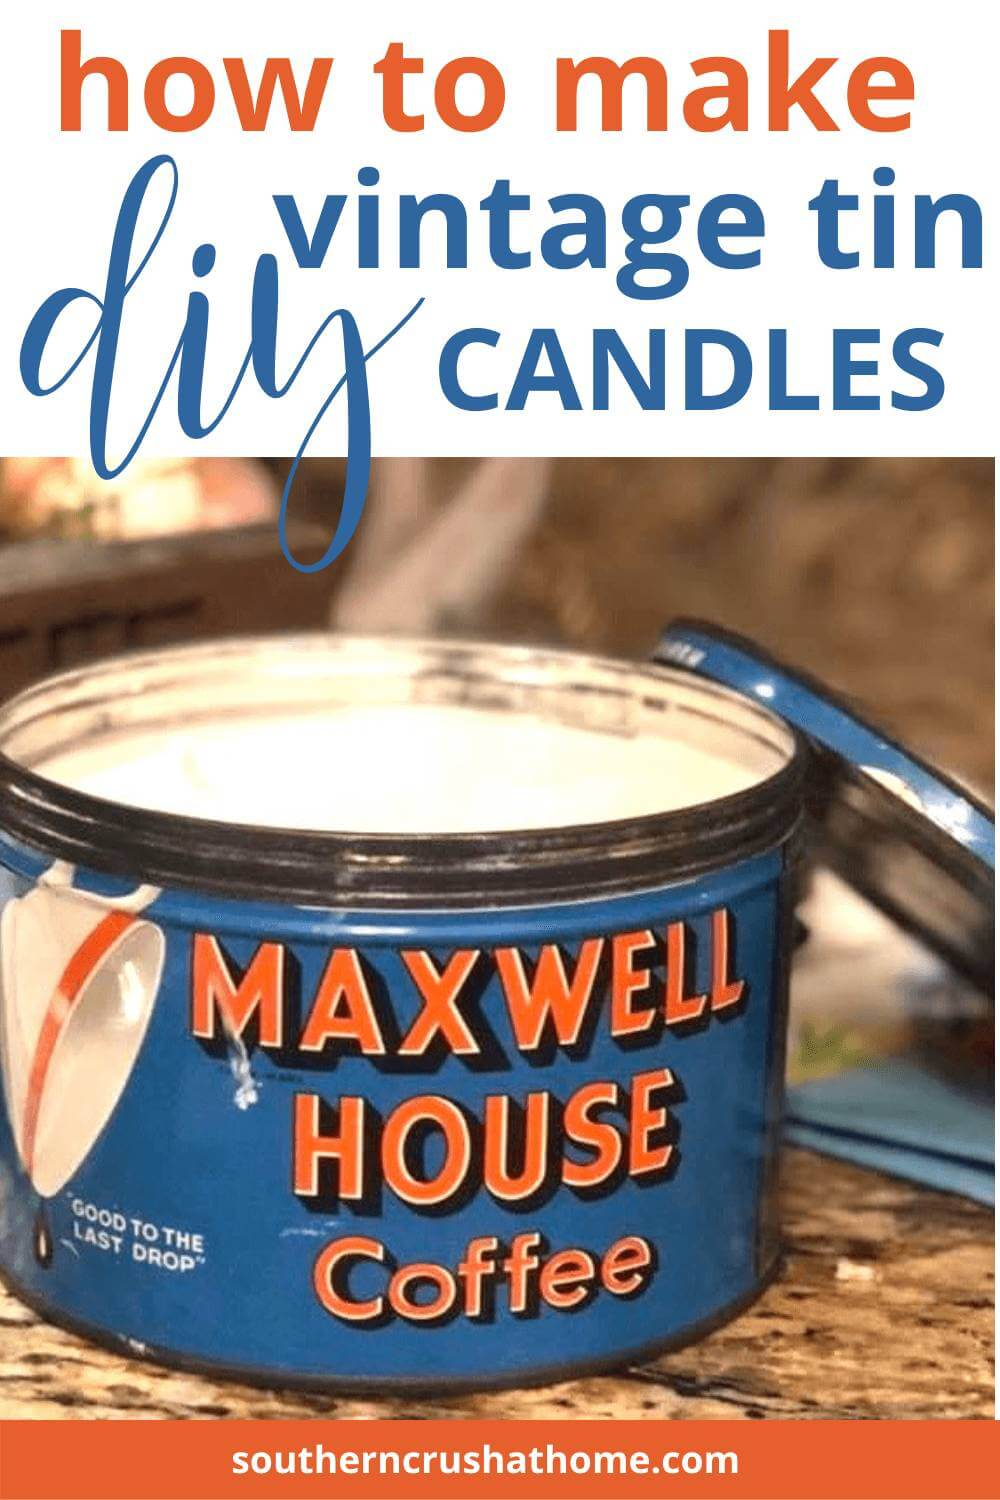 DIY Candles in vintage tin with lid